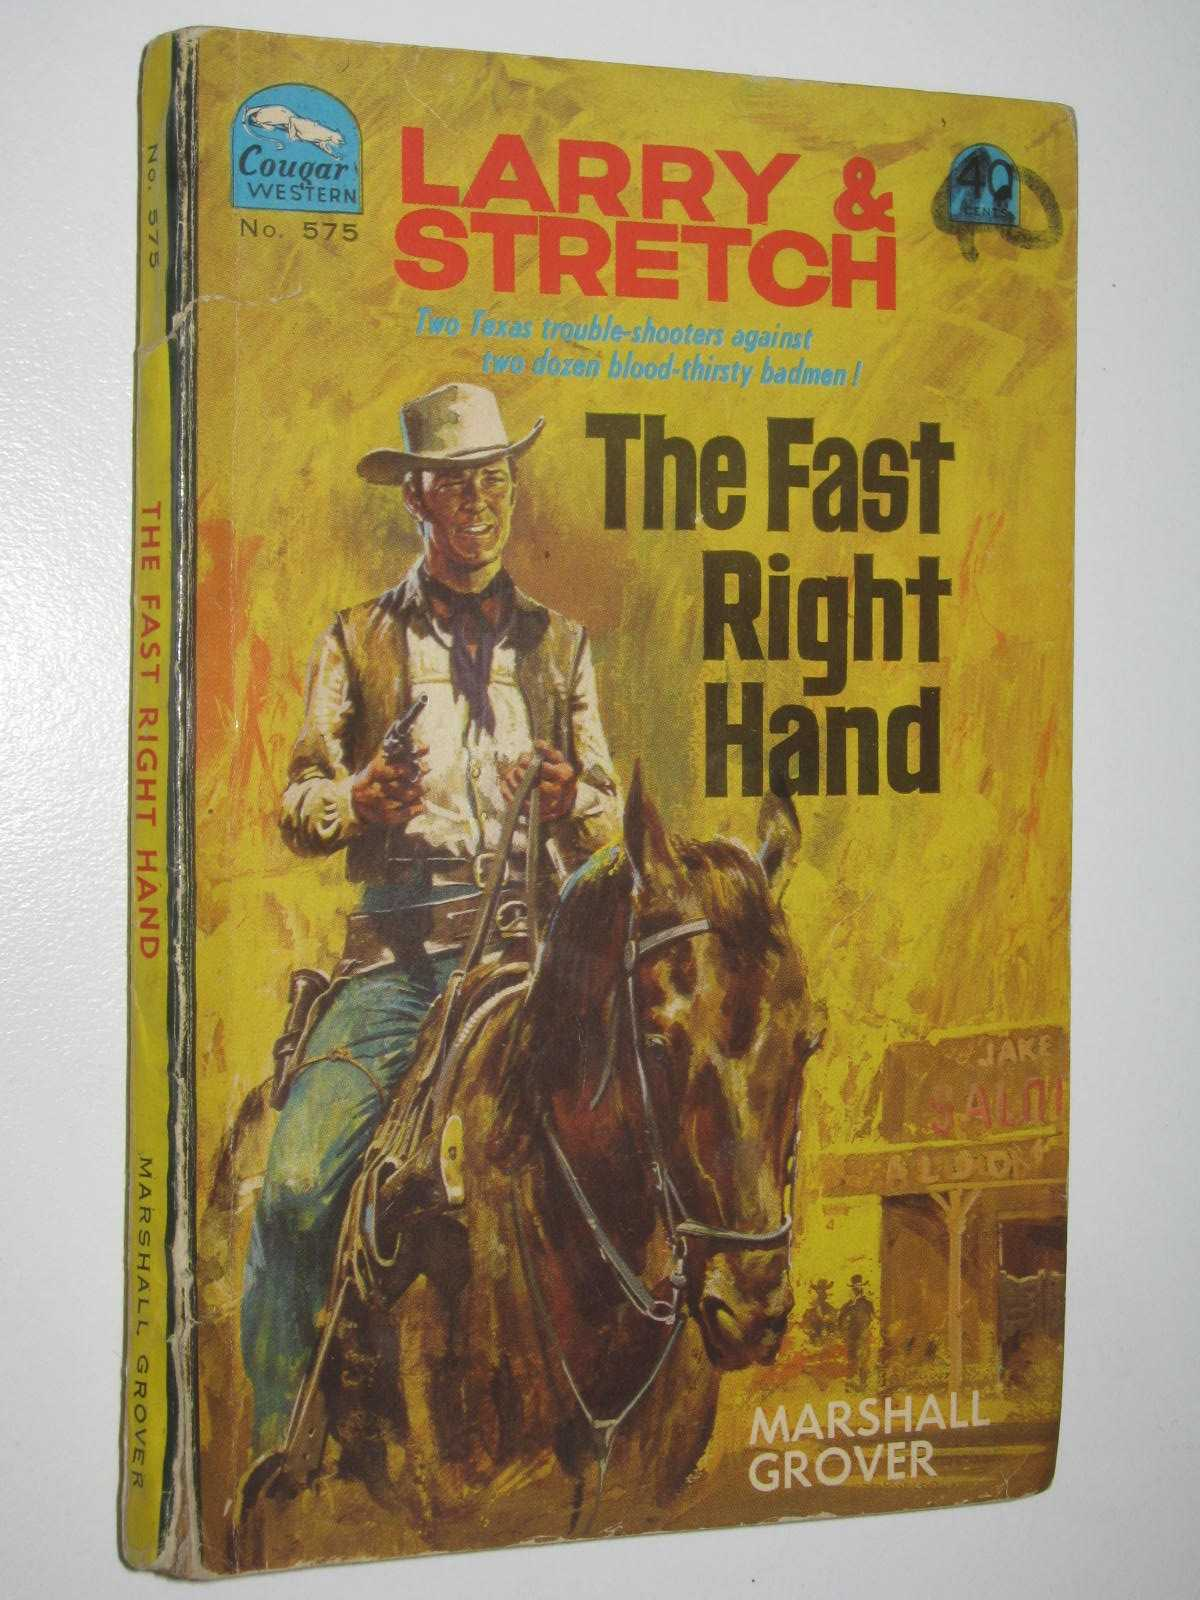 Image for The Fast Right Hand - Larry and Stretch [Cougar Western] Series #575